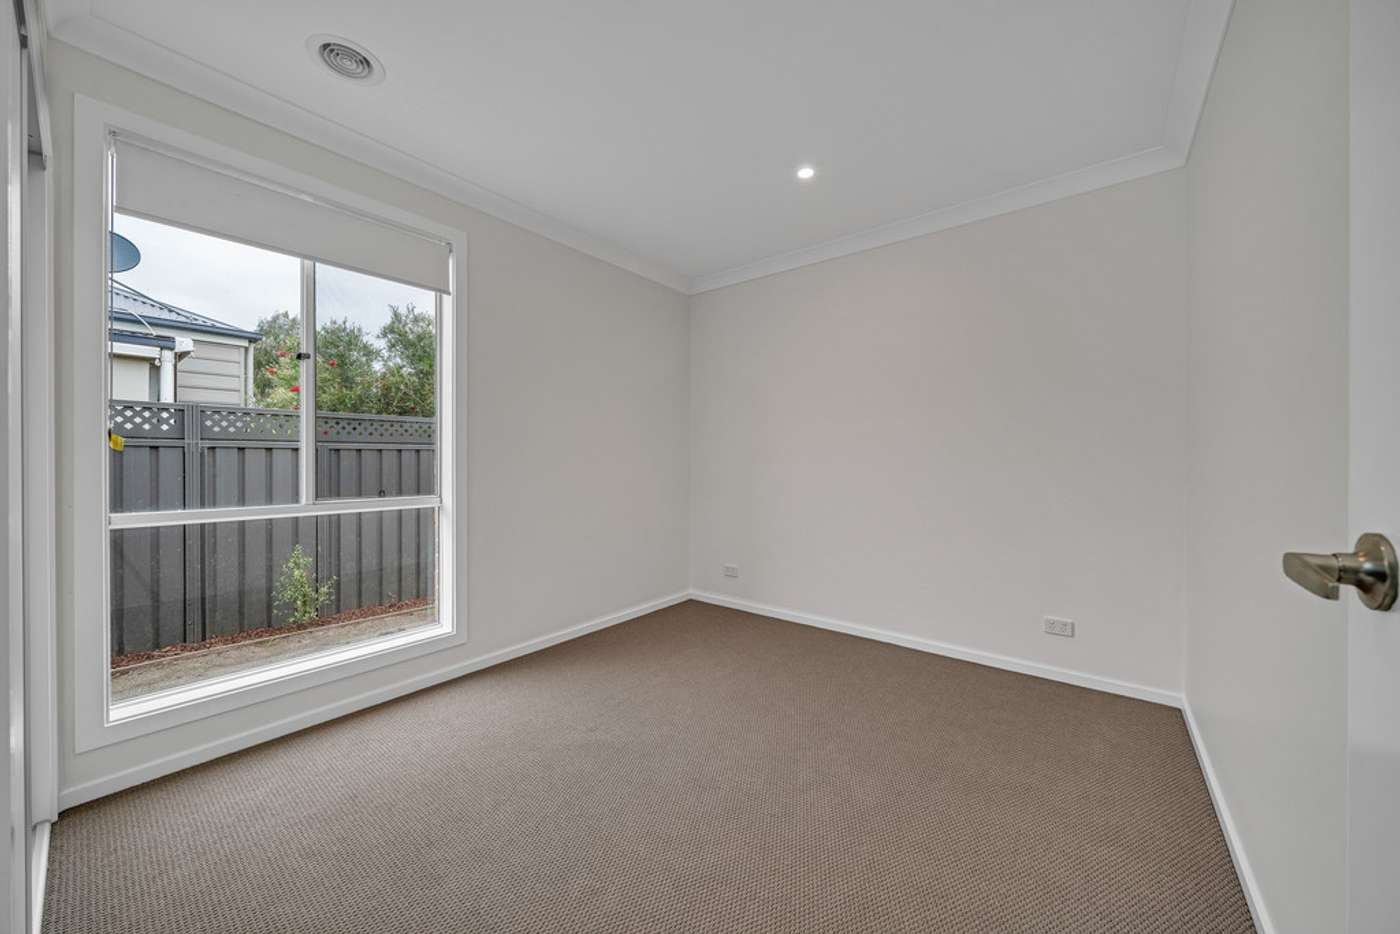 Sixth view of Homely house listing, 17 Mercury Road, Cranbourne East VIC 3977